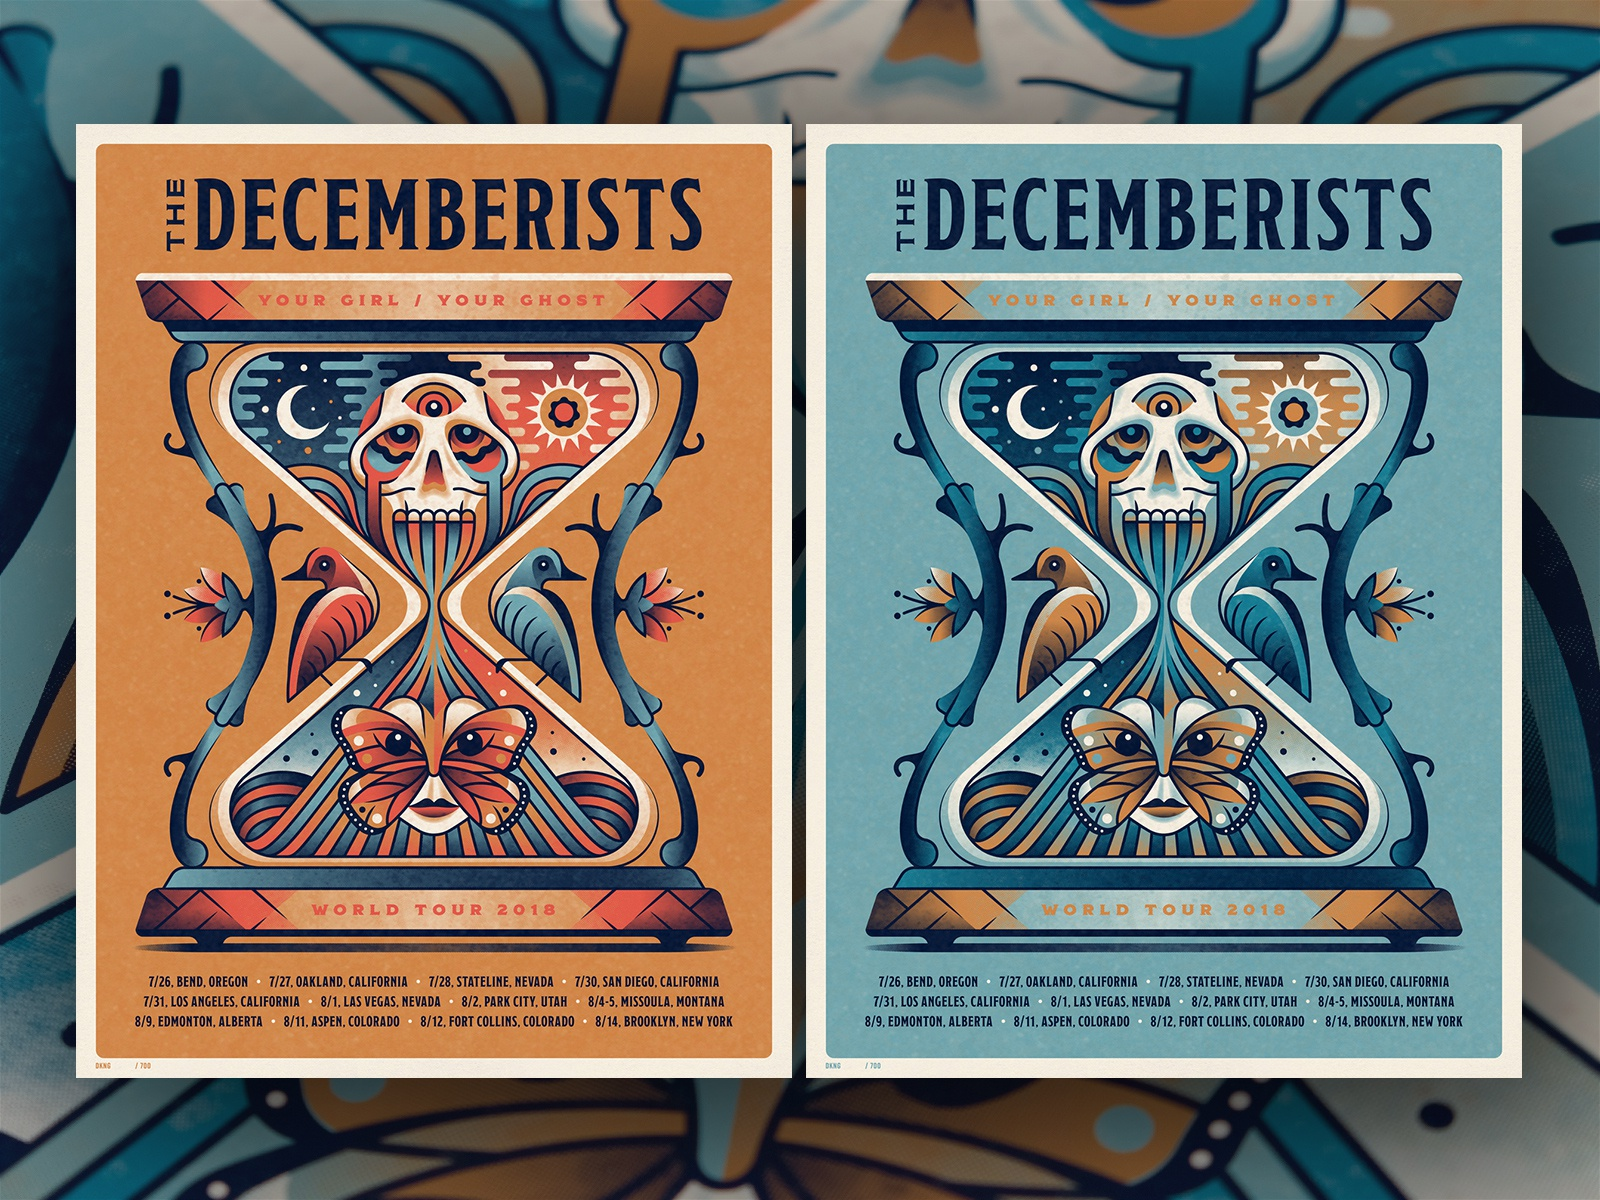 Decemberists dkng